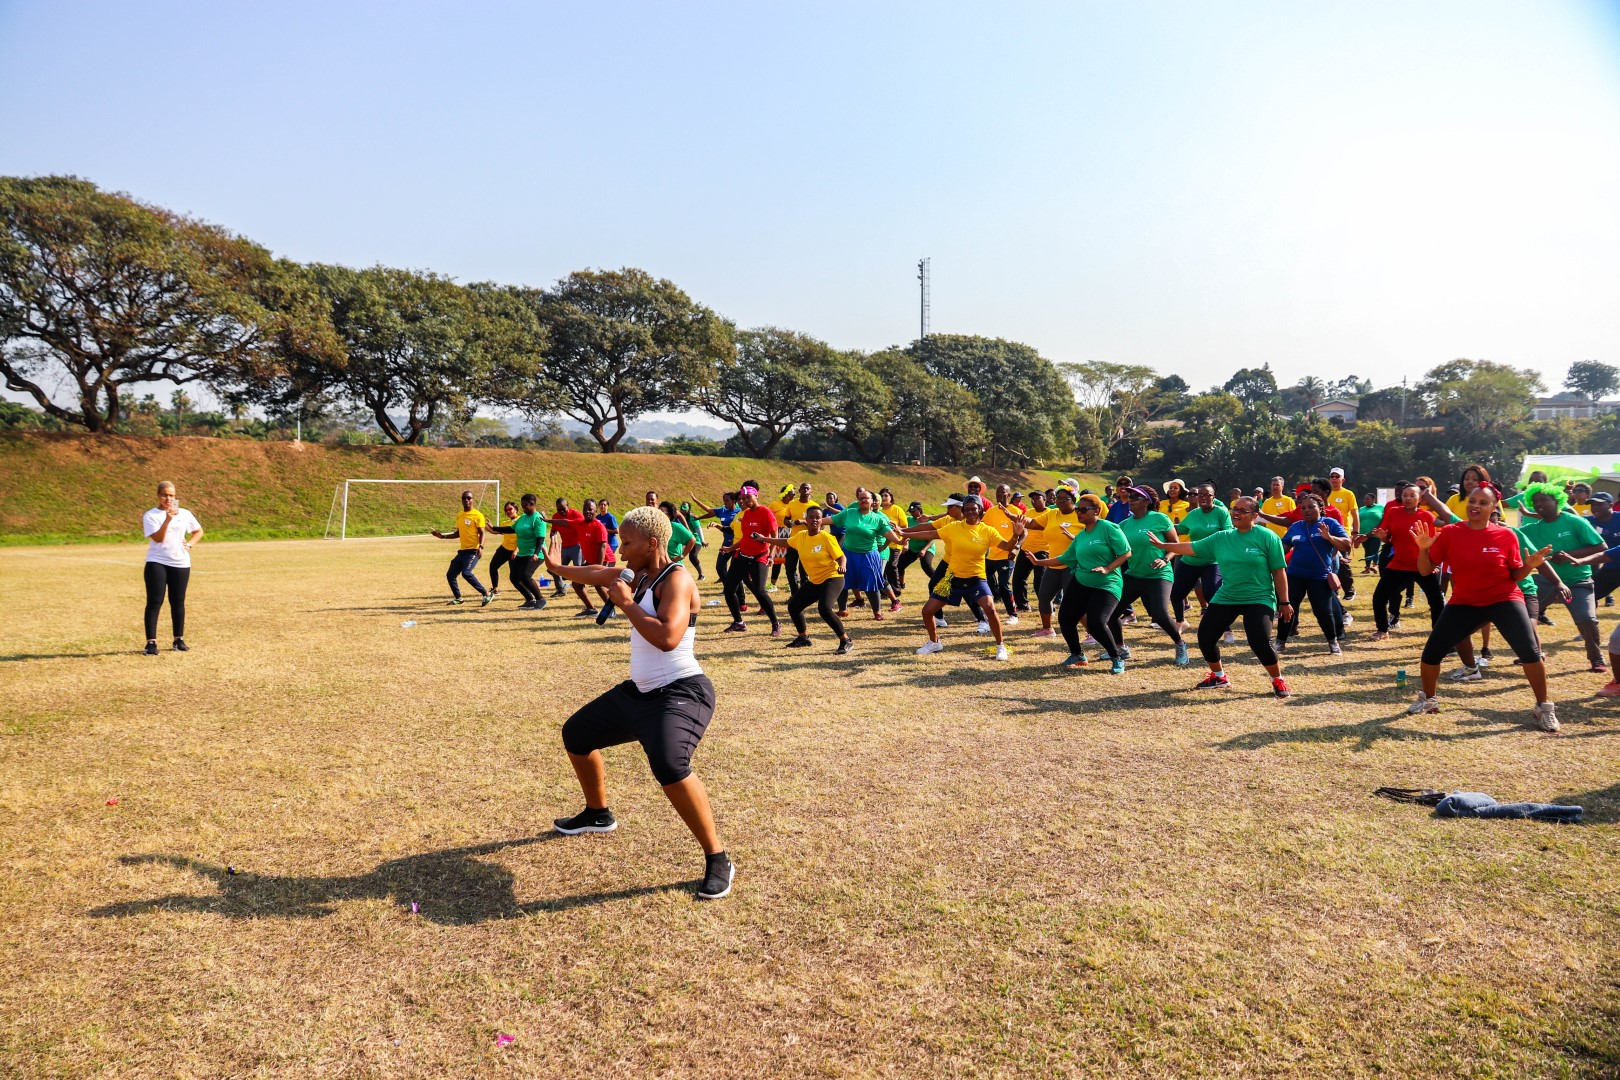 Staff participate in a warm up session of Zumba